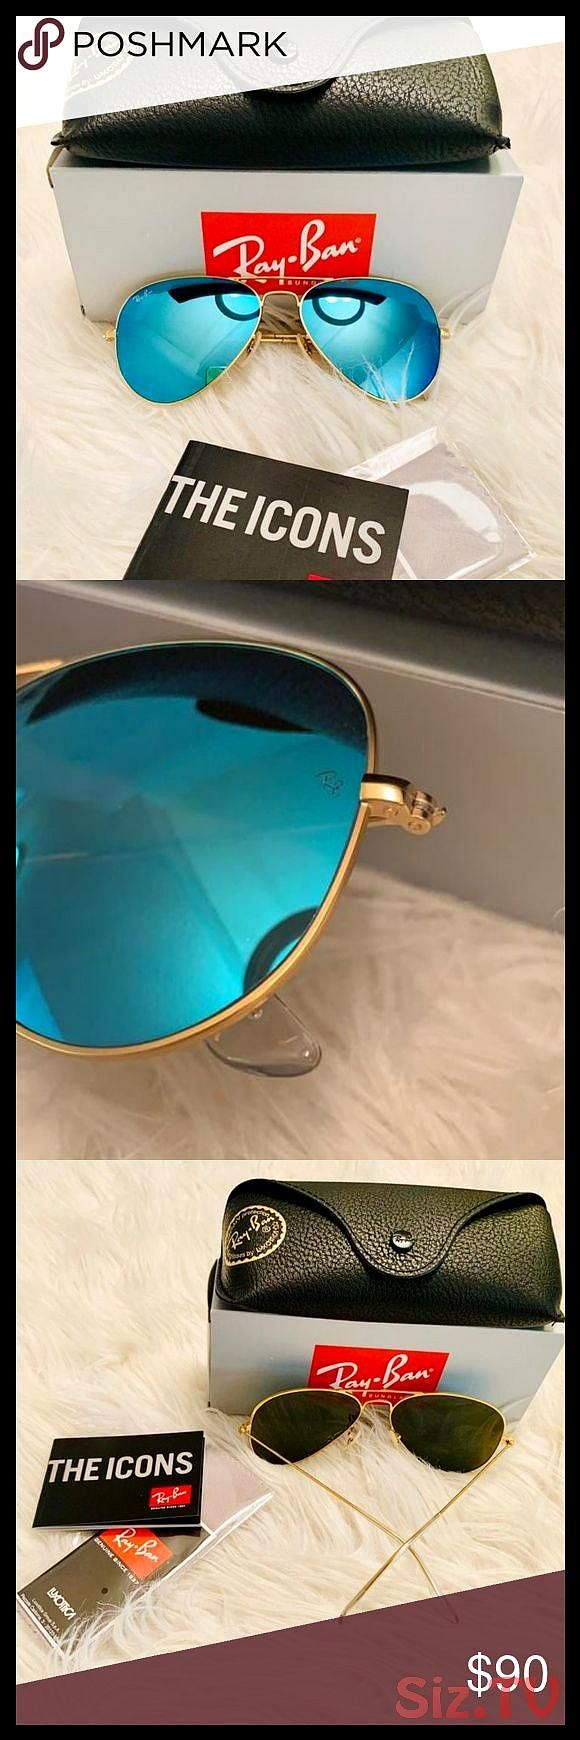 NWT Ray Ban Flash Aviator Turquoise color NWT Ray Ban Flash Aviator Turquoise color Matte Gold metal frame New with tags Size 58mm Unisex All accessNWT Ray Ban Flash Avia...